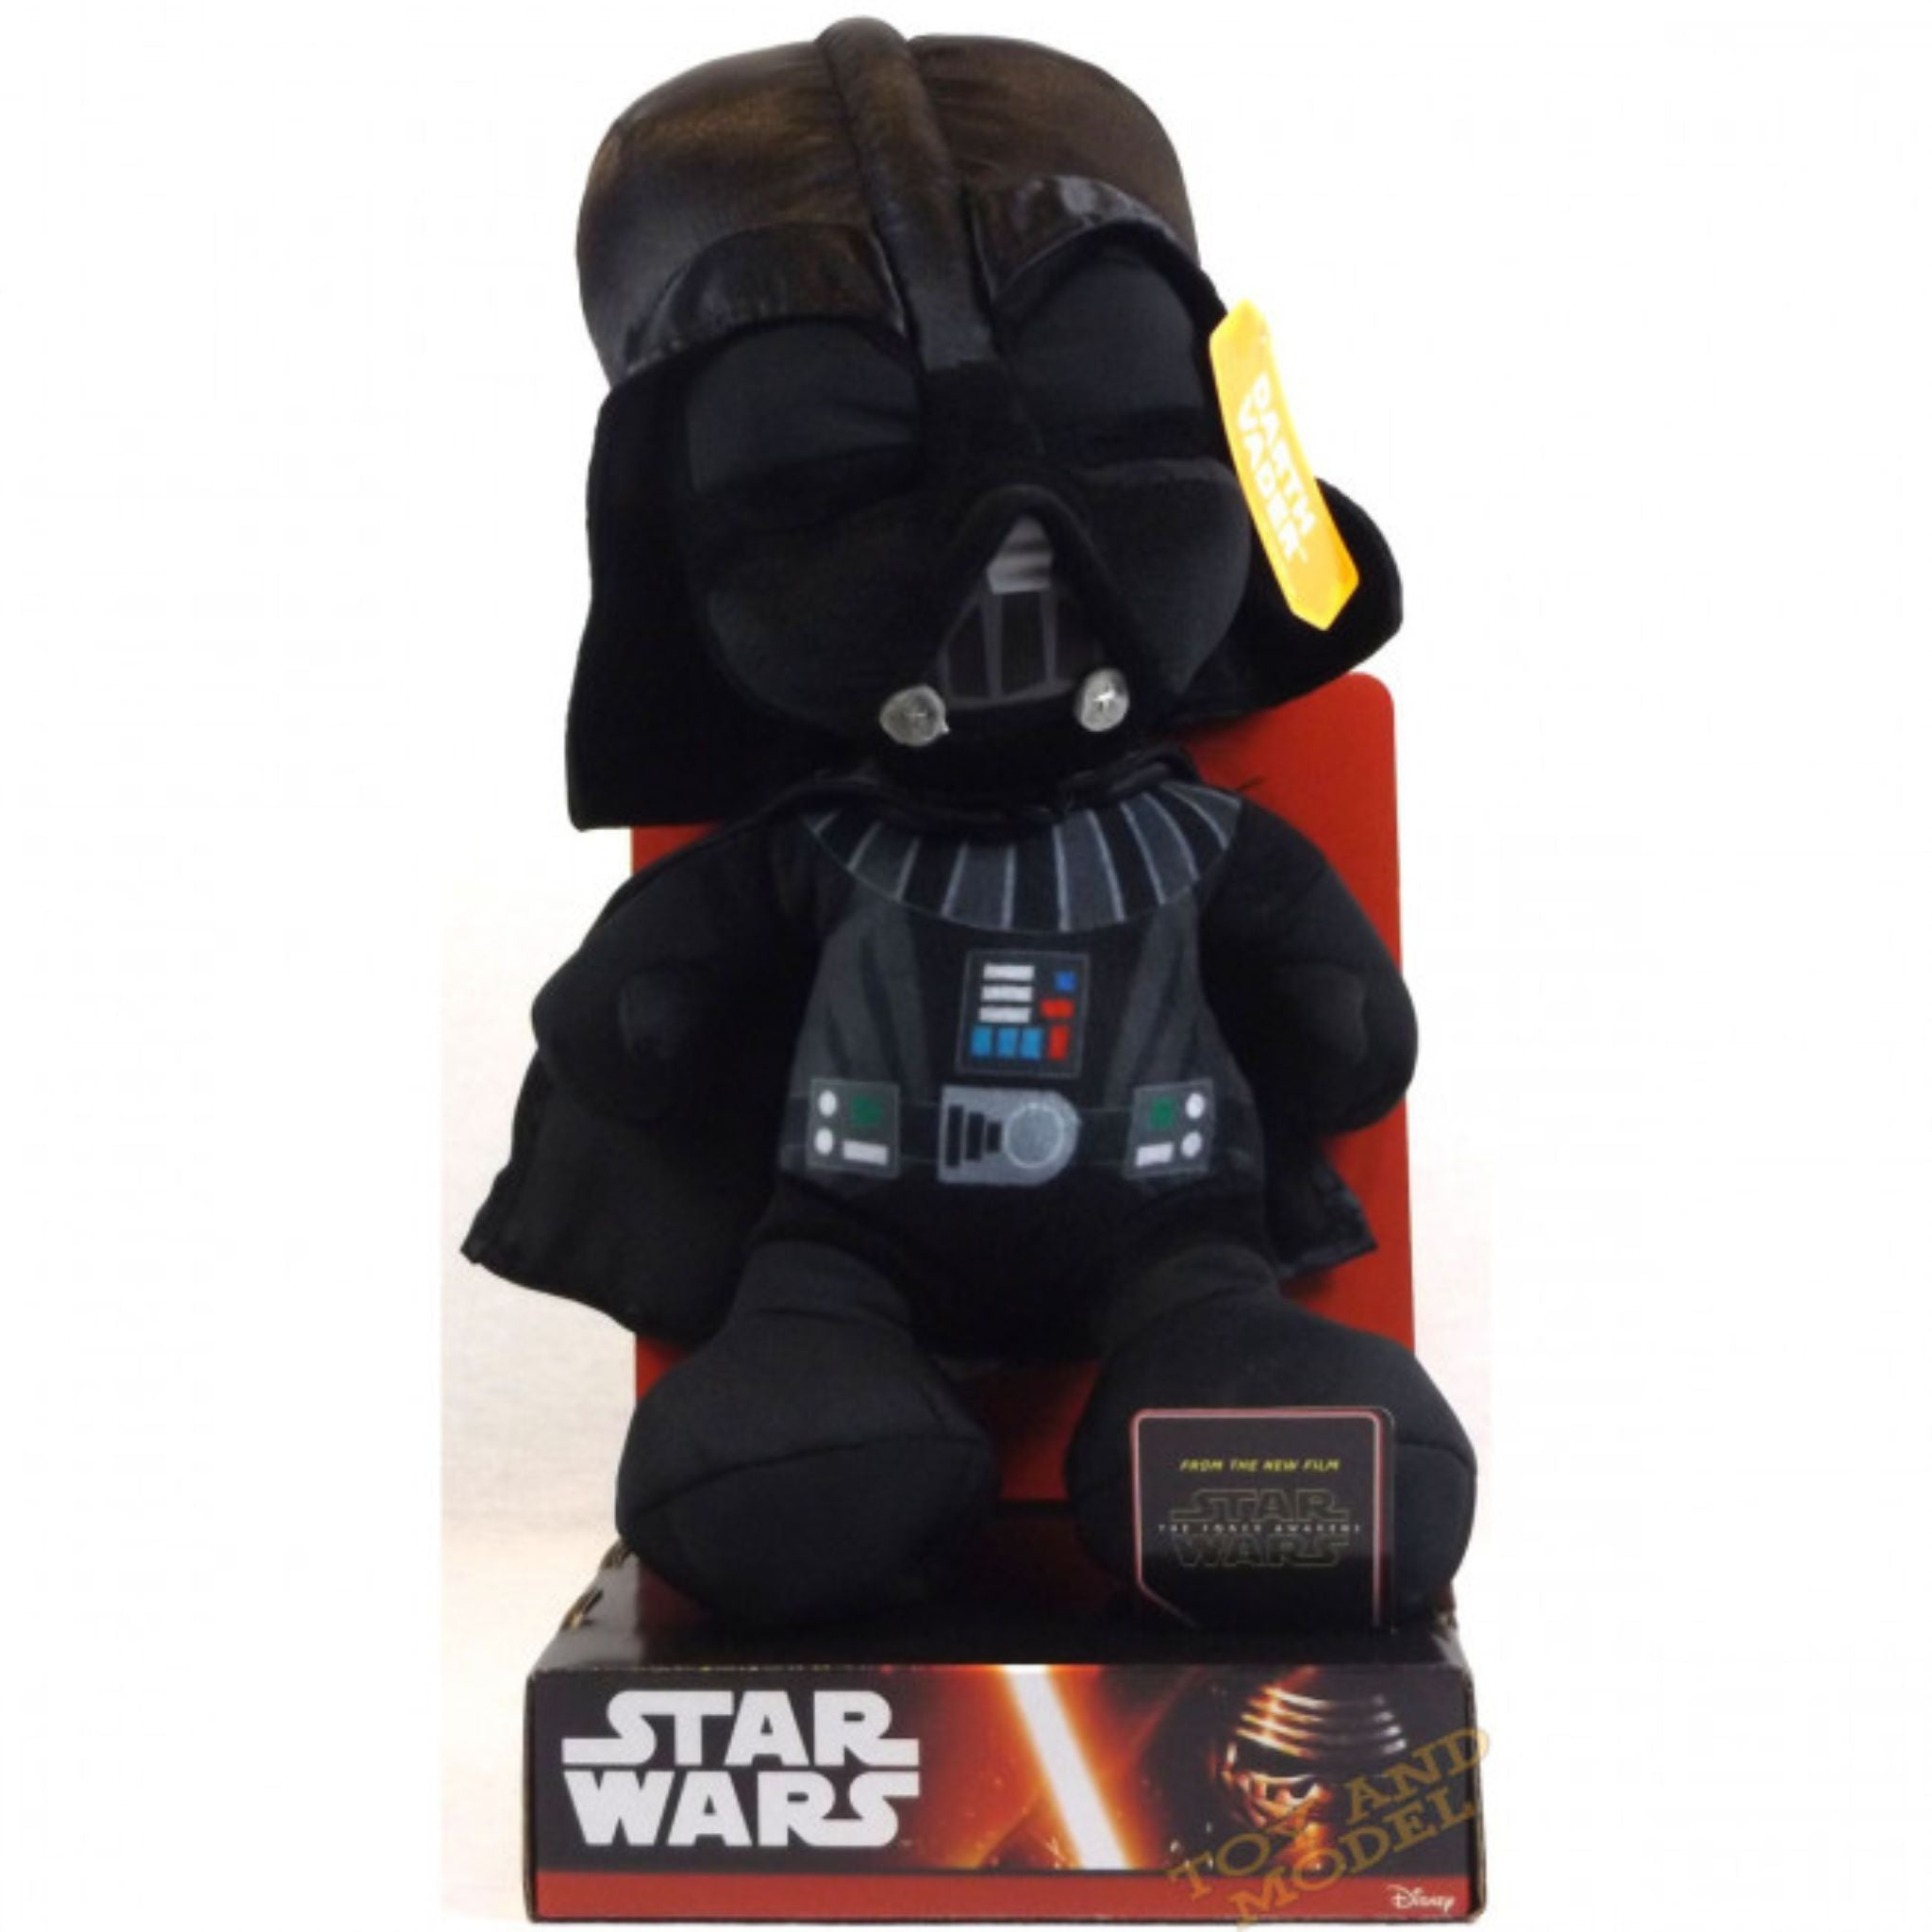 Posh Paws - Star Wars : Darth Vader Plush